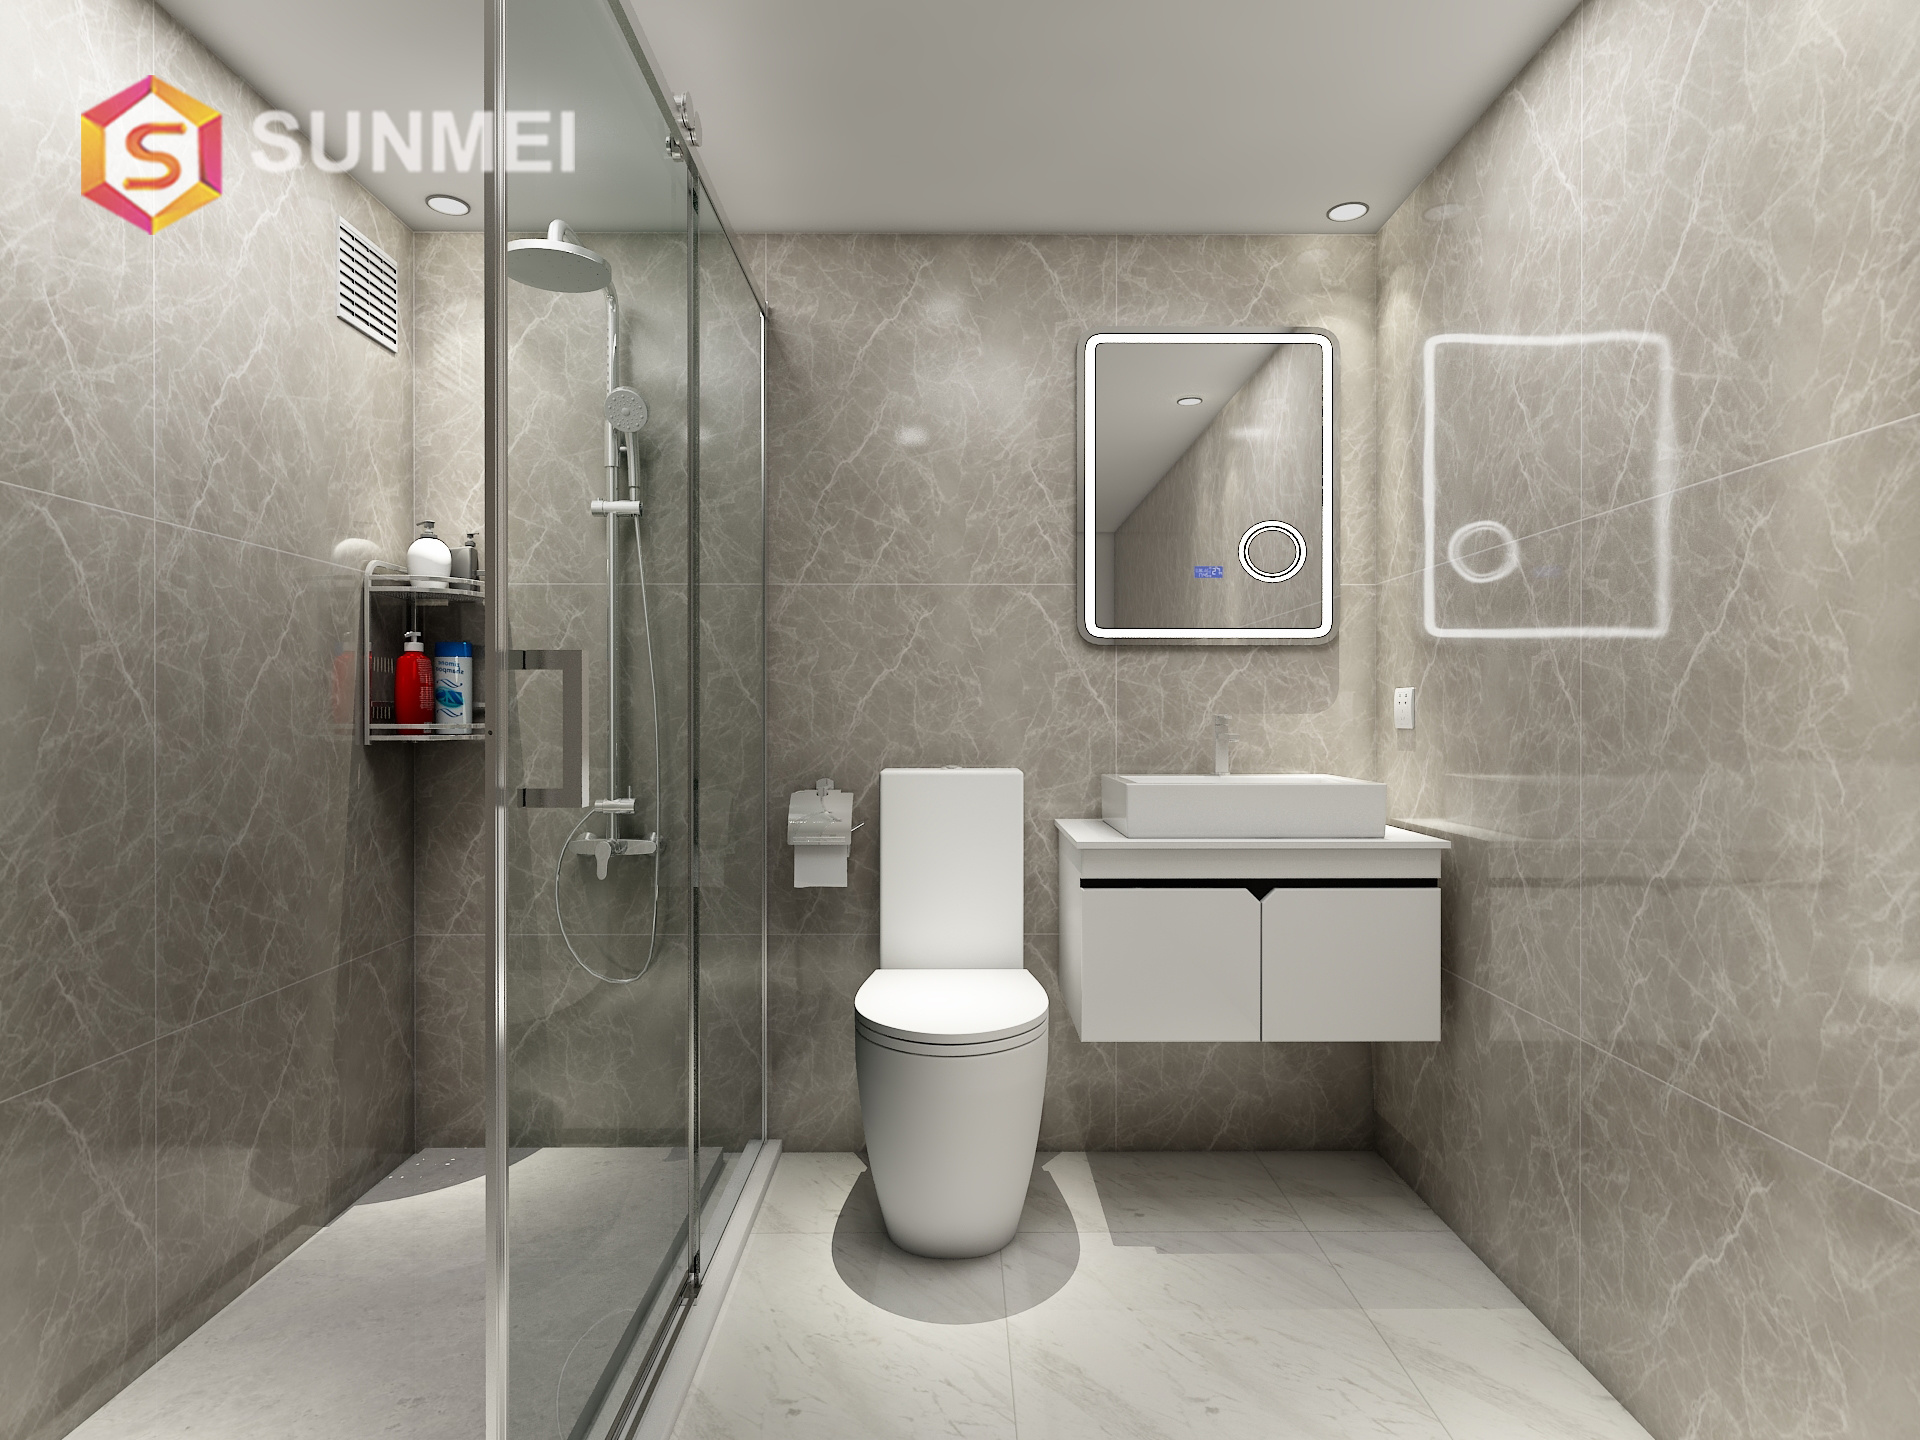 Attractive ... Ceiling Panels, Bottom Plate, Sanitary Ware, Lighting And Piping  System. All Pods Are Built In Accordance With The Current Regulations ...